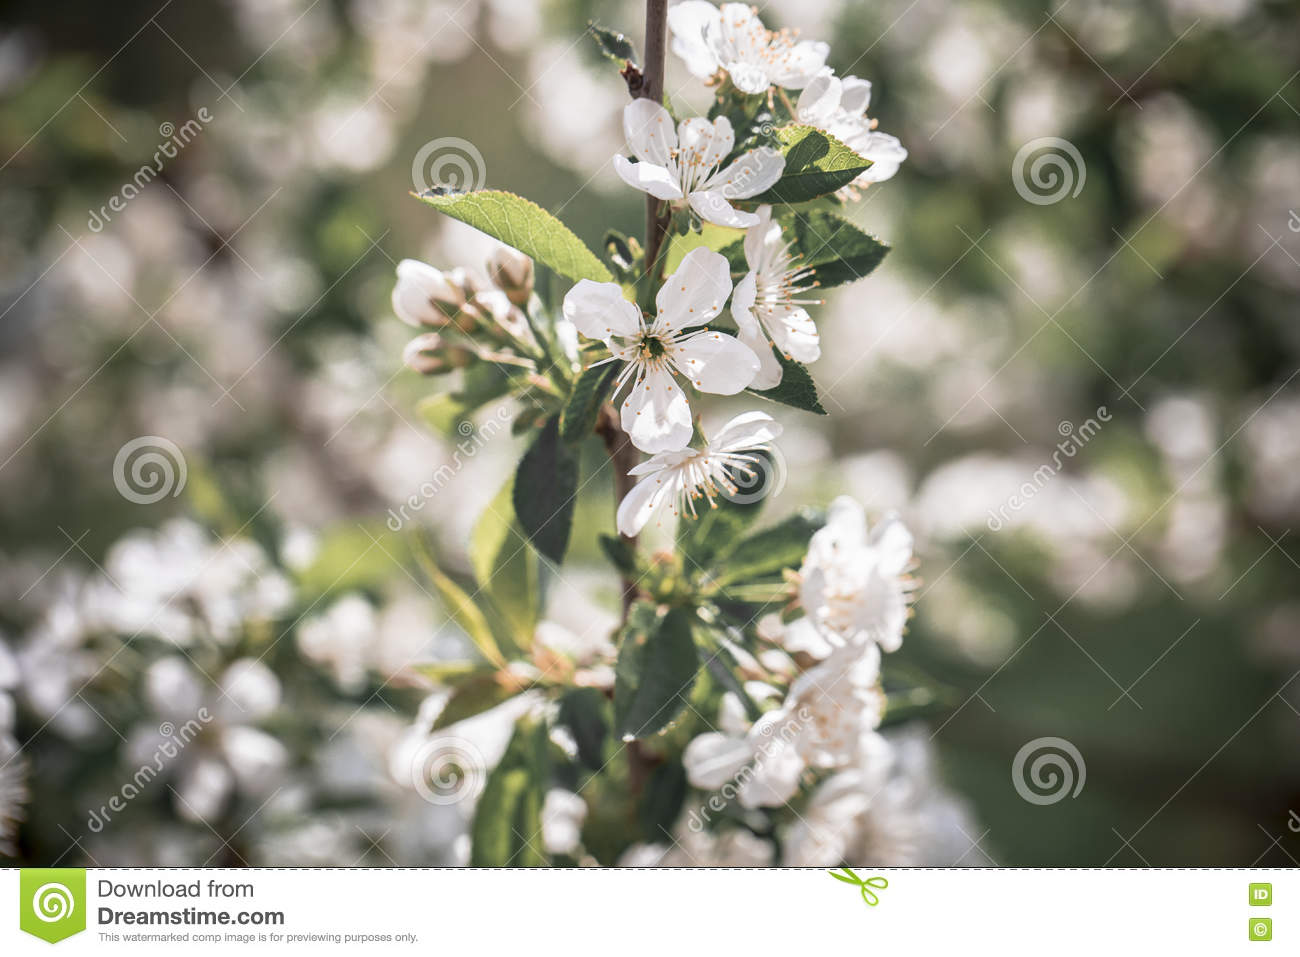 White Small Flowers On Tree Stock Image Image Of Graphic Ornate